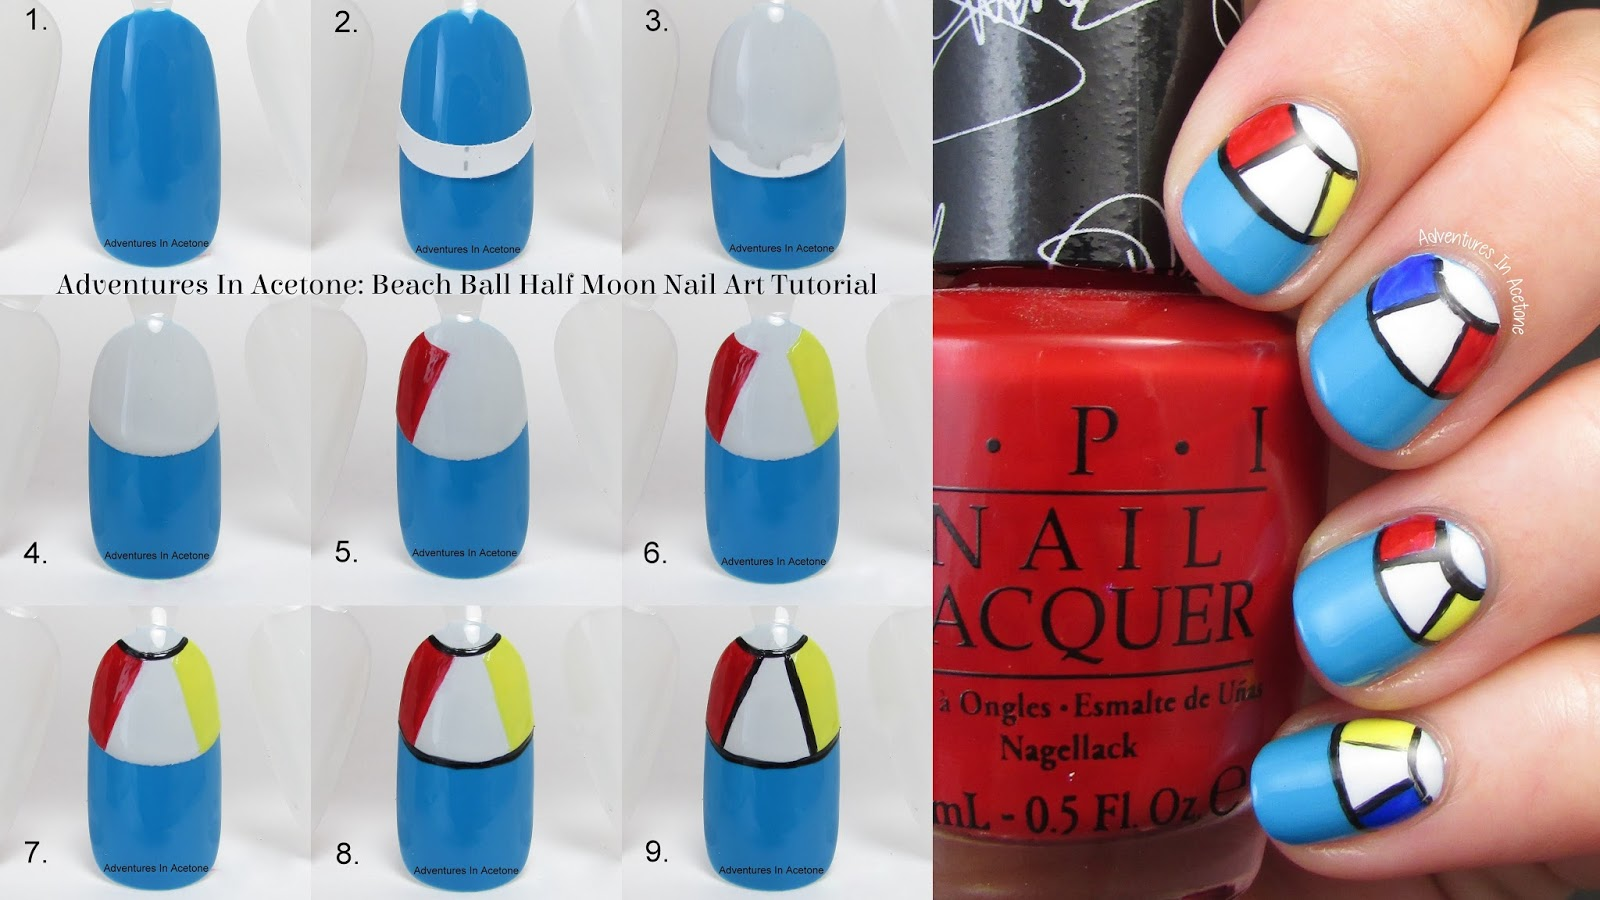 Tutorial Tuesday: Beach Ball Half Moon Nail Art! - Adventures In Acetone